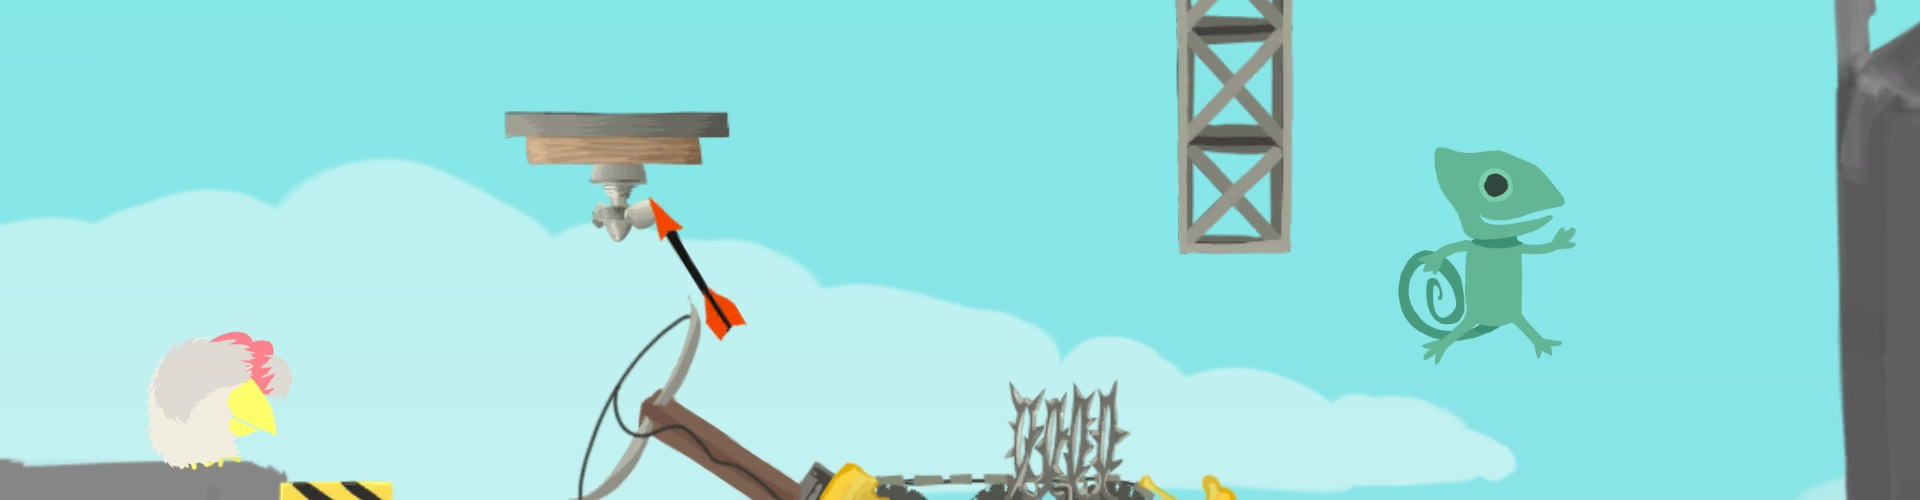 Ultimate Chicken Horse Review - Xbox Tavern